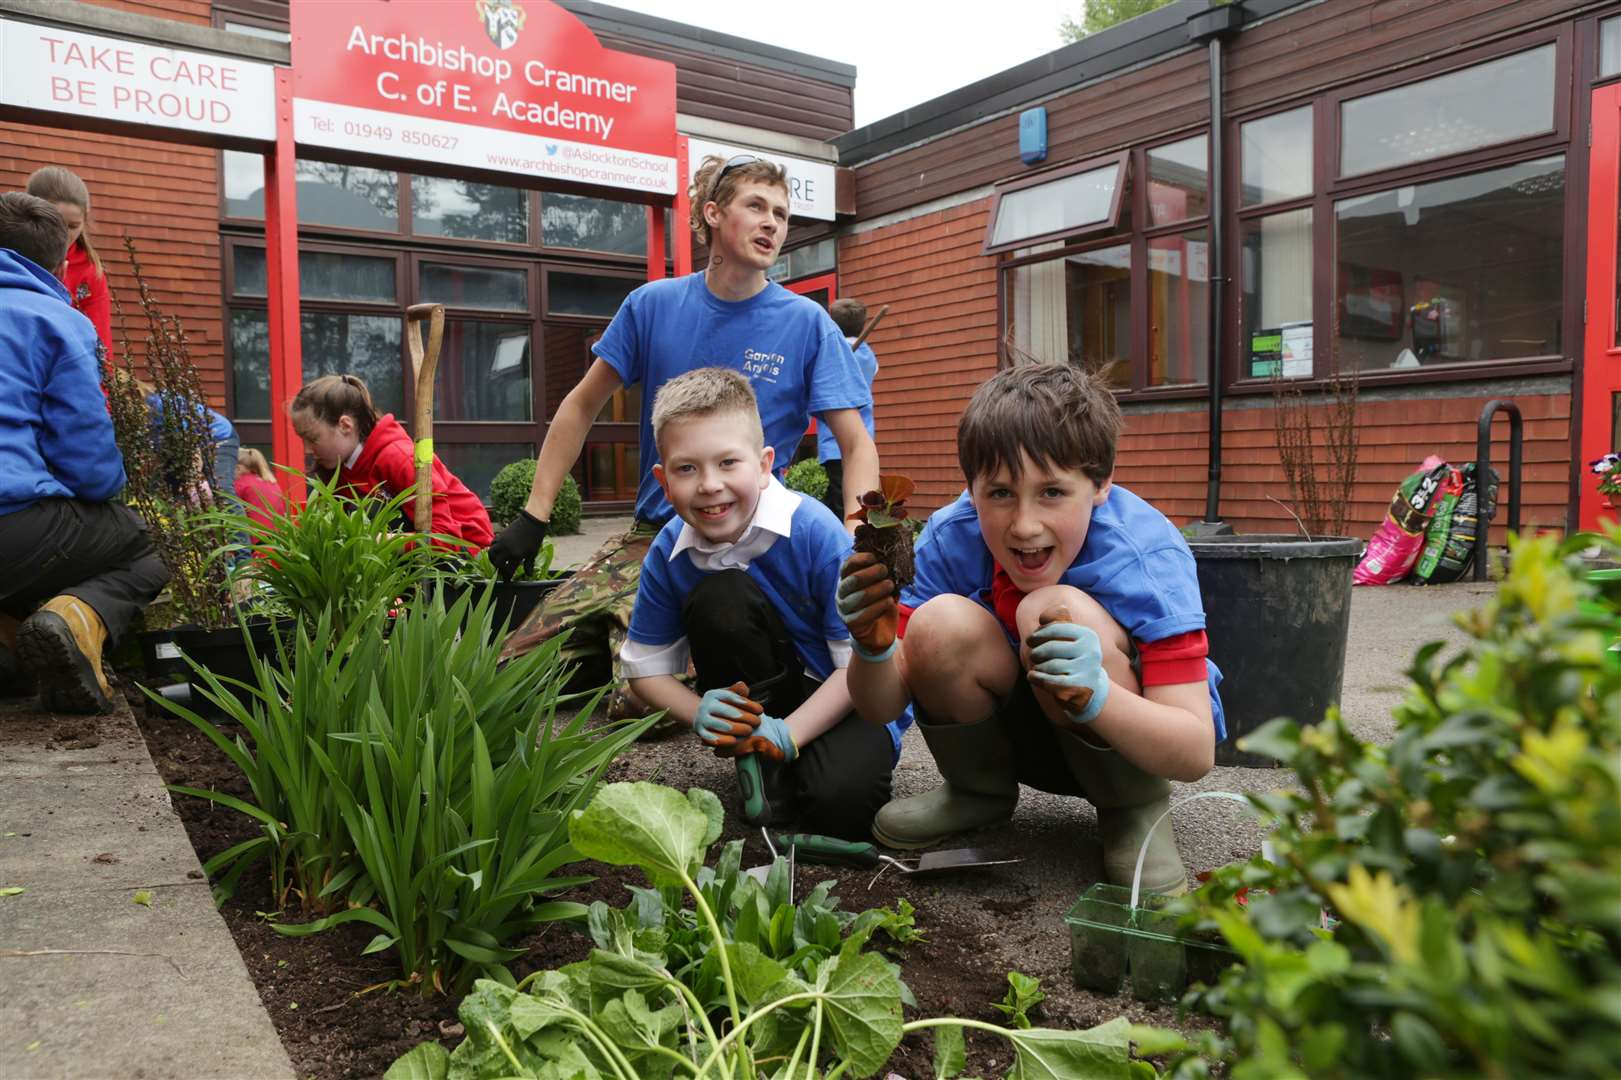 Archbishop Cramner pupils Benjamin Barr, 10 and Daniel Ivemey, 9, spruce up the entrance to their school. 260419TV2-3. (9340655)